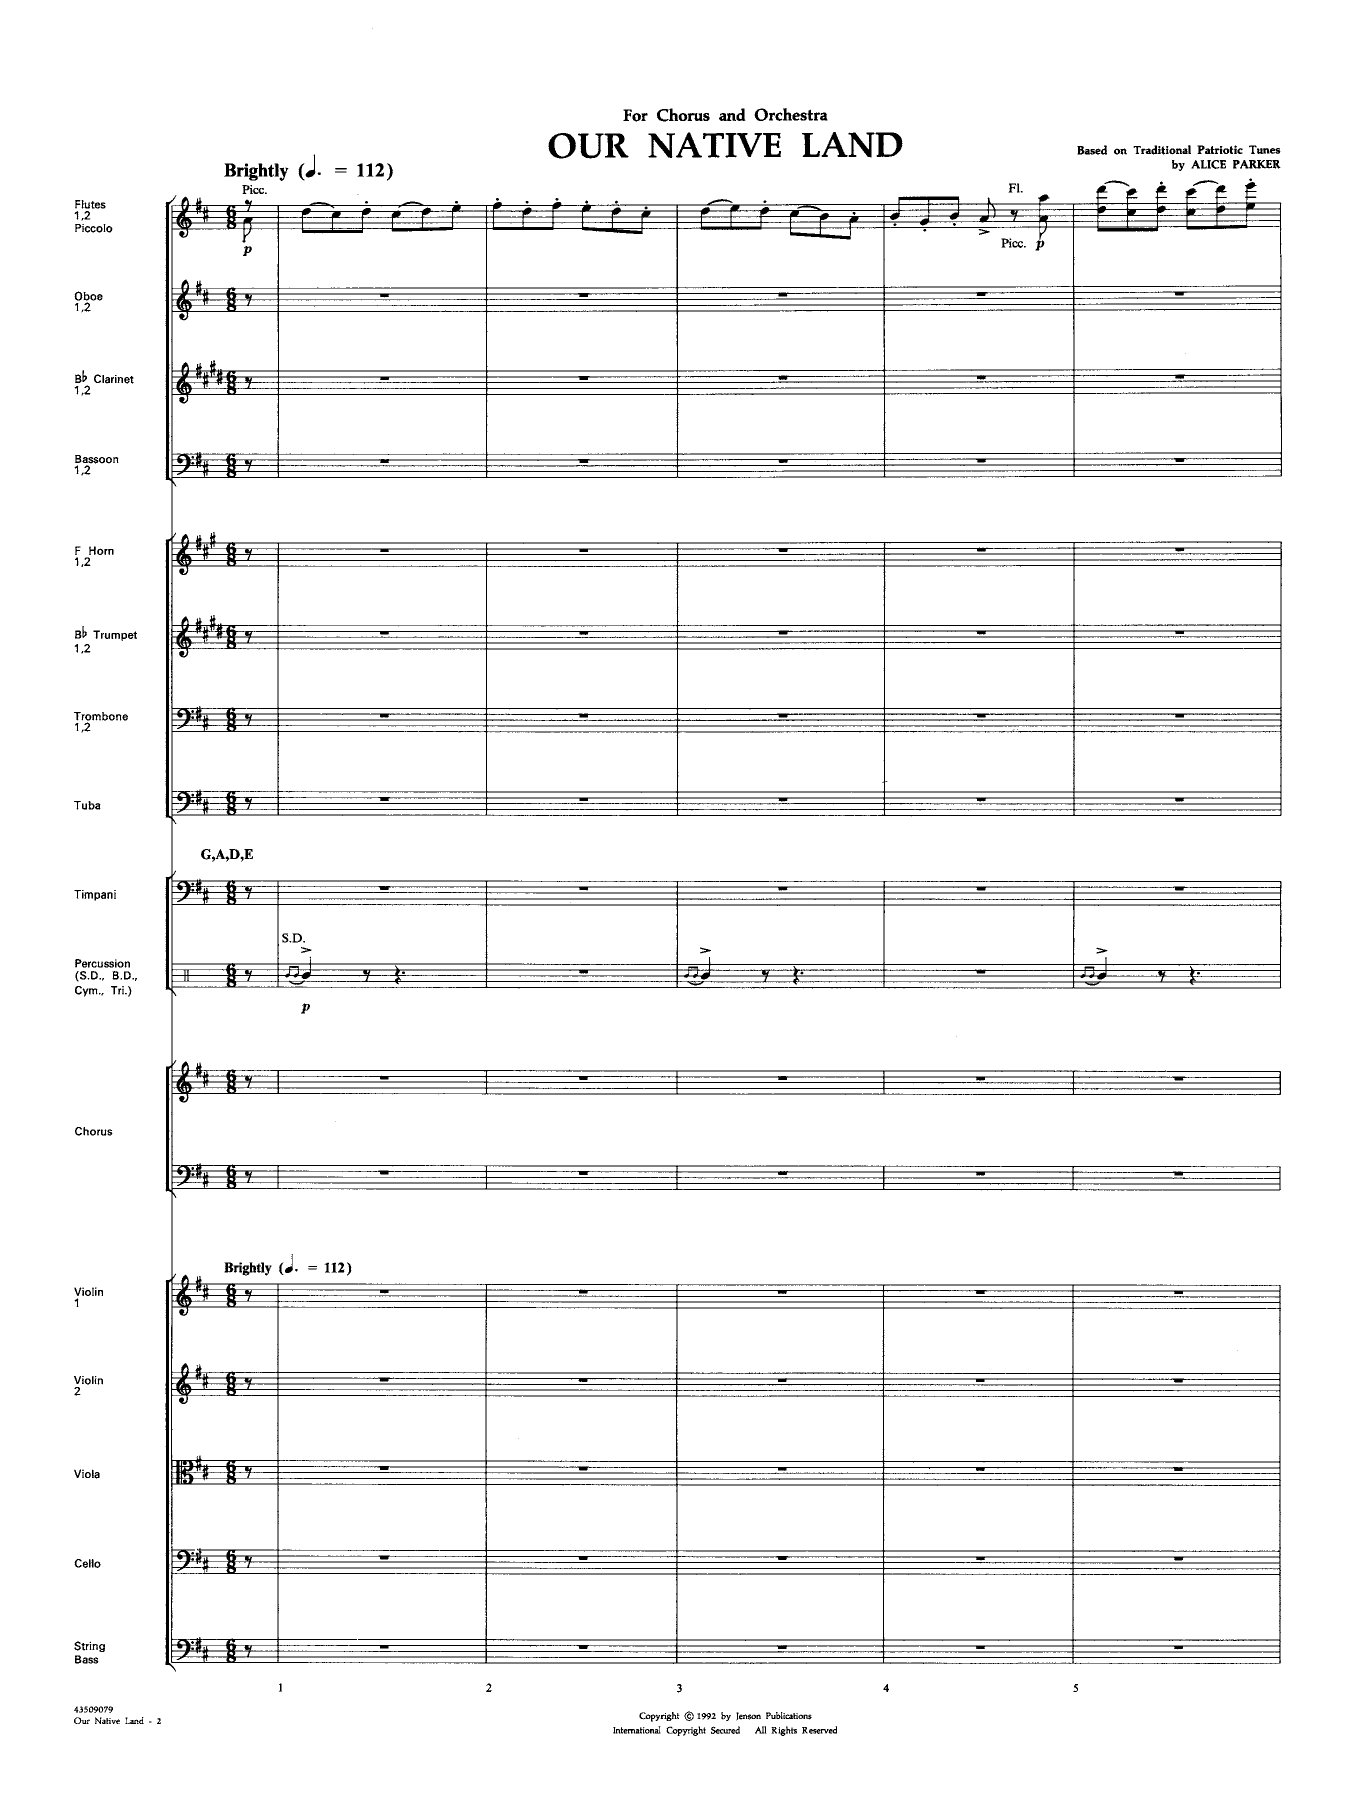 Our Native Land - Score Sheet Music